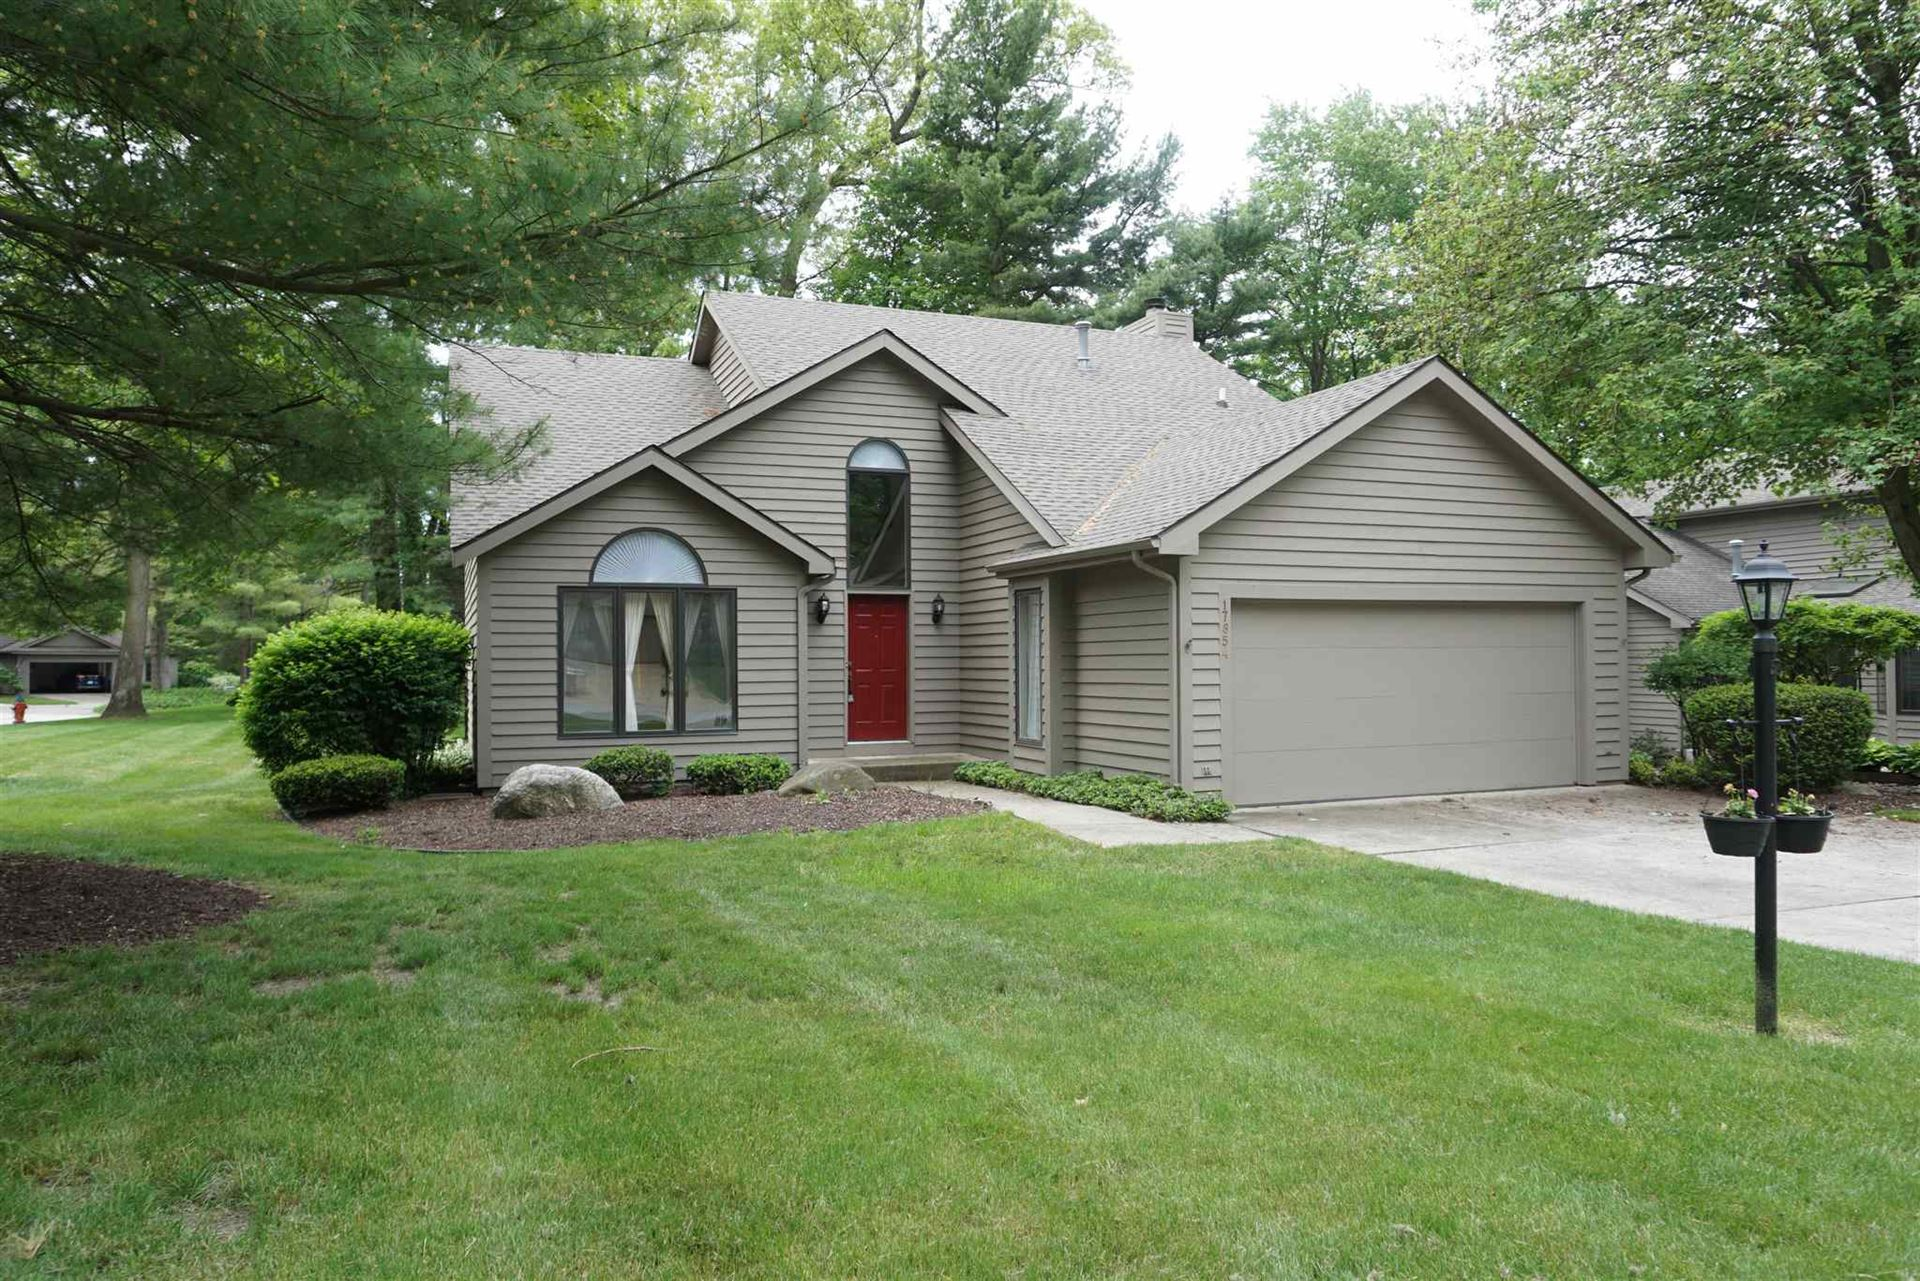 17854 SABLE RIDGE Drive, South Bend, IN 46635 - #: 202020341